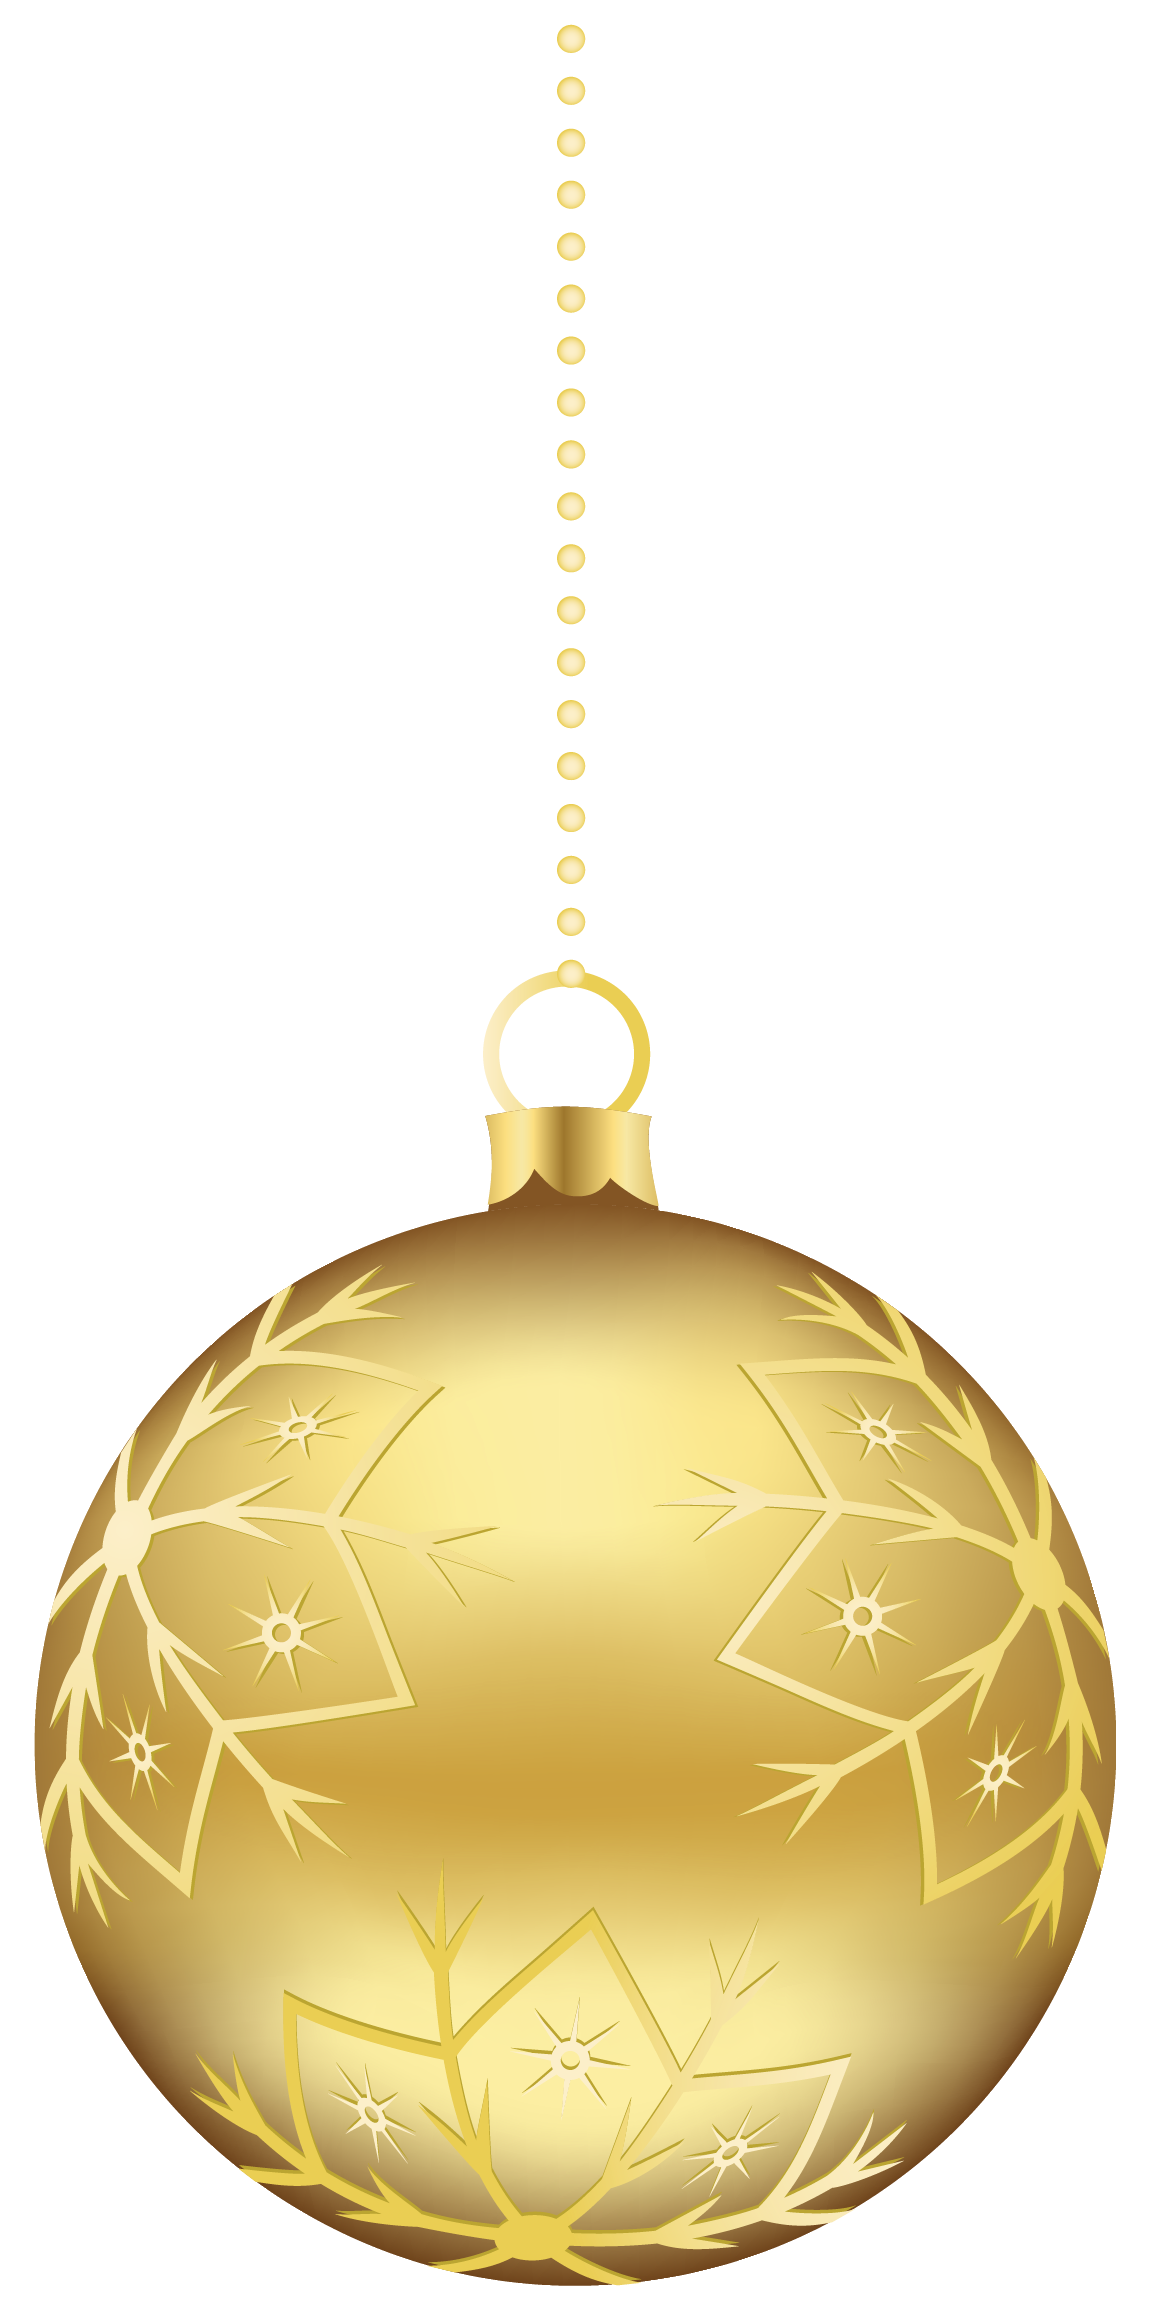 Tree ornament clipart clip art download Gold Christmas Ornaments PNG Clipart #46350 - Free Icons and PNG ... clip art download